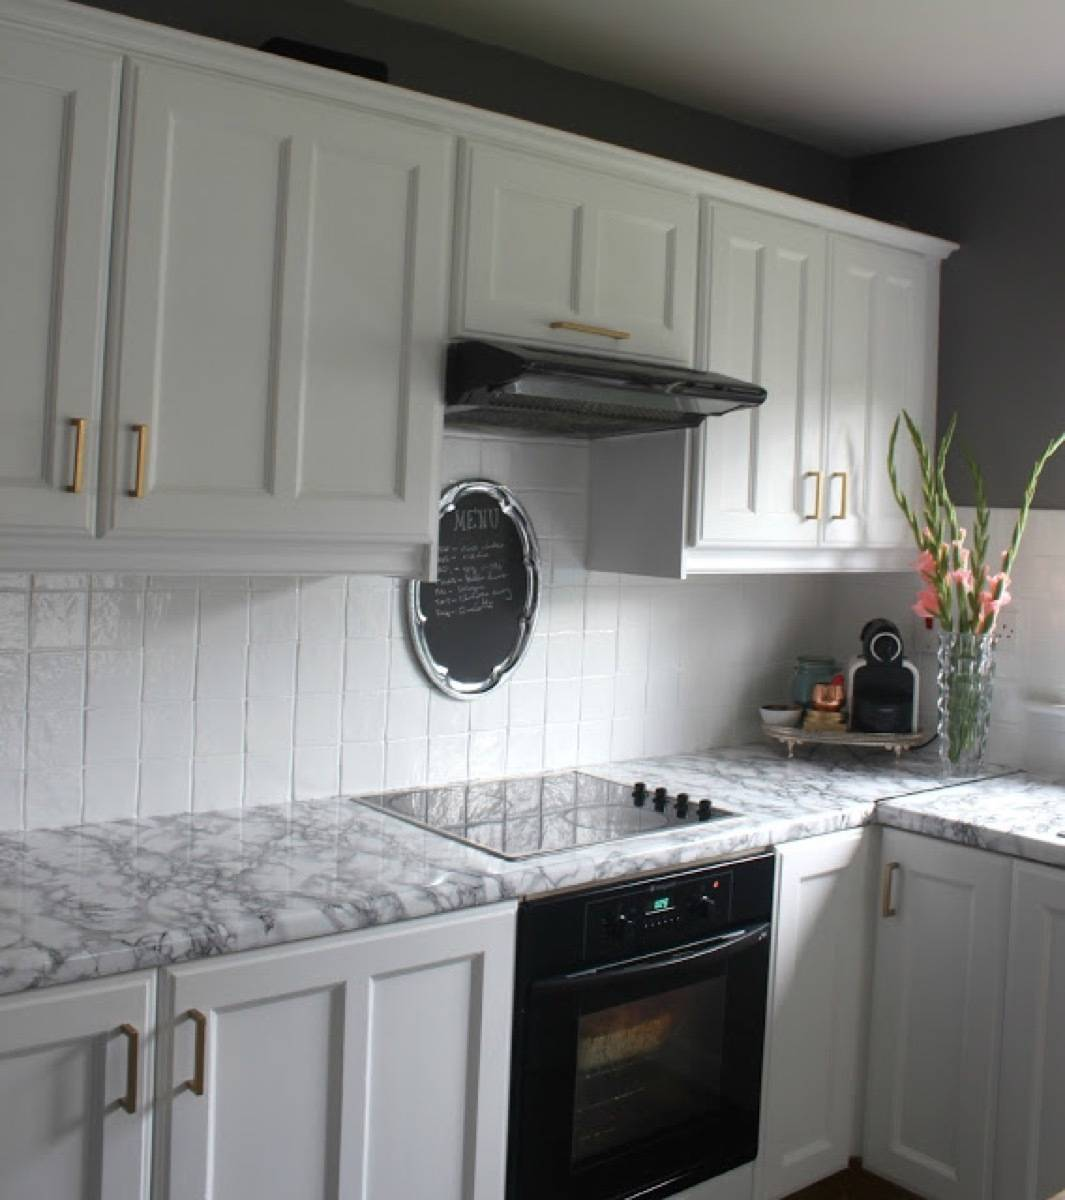 Contact paper on countertops